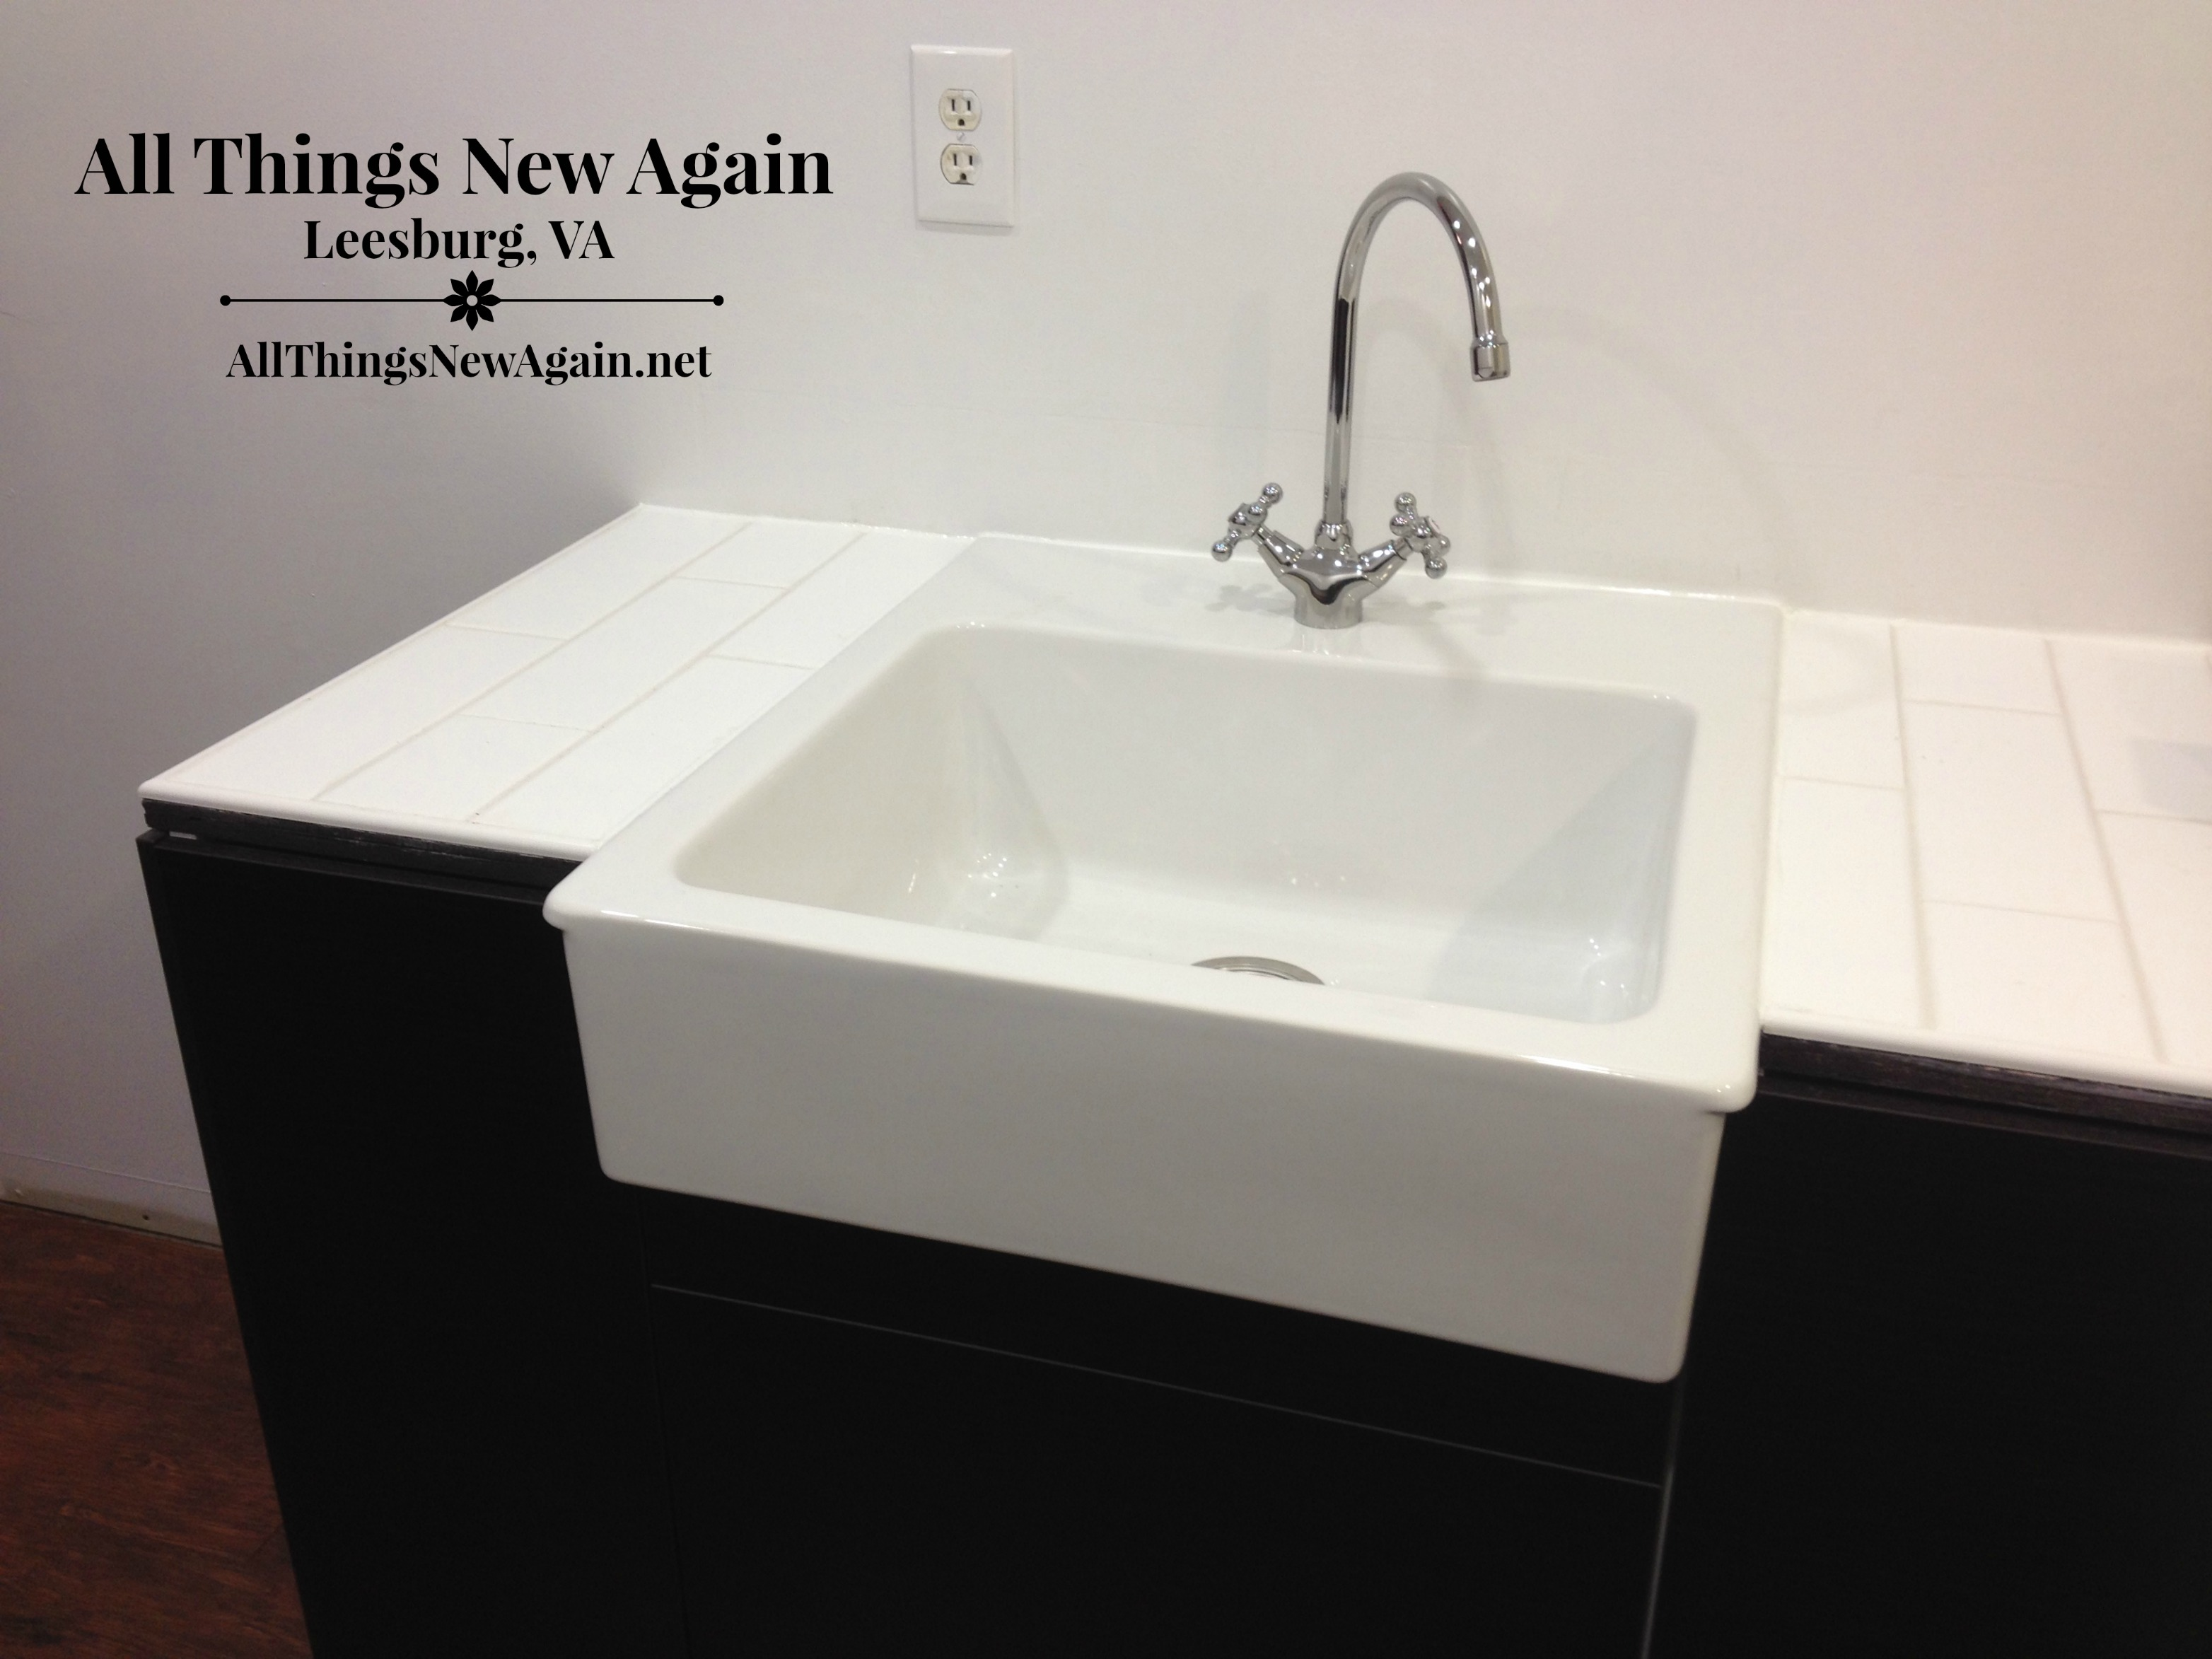 Utility Room Sink : ... sink for a laundry room instead of a standard washroom sink